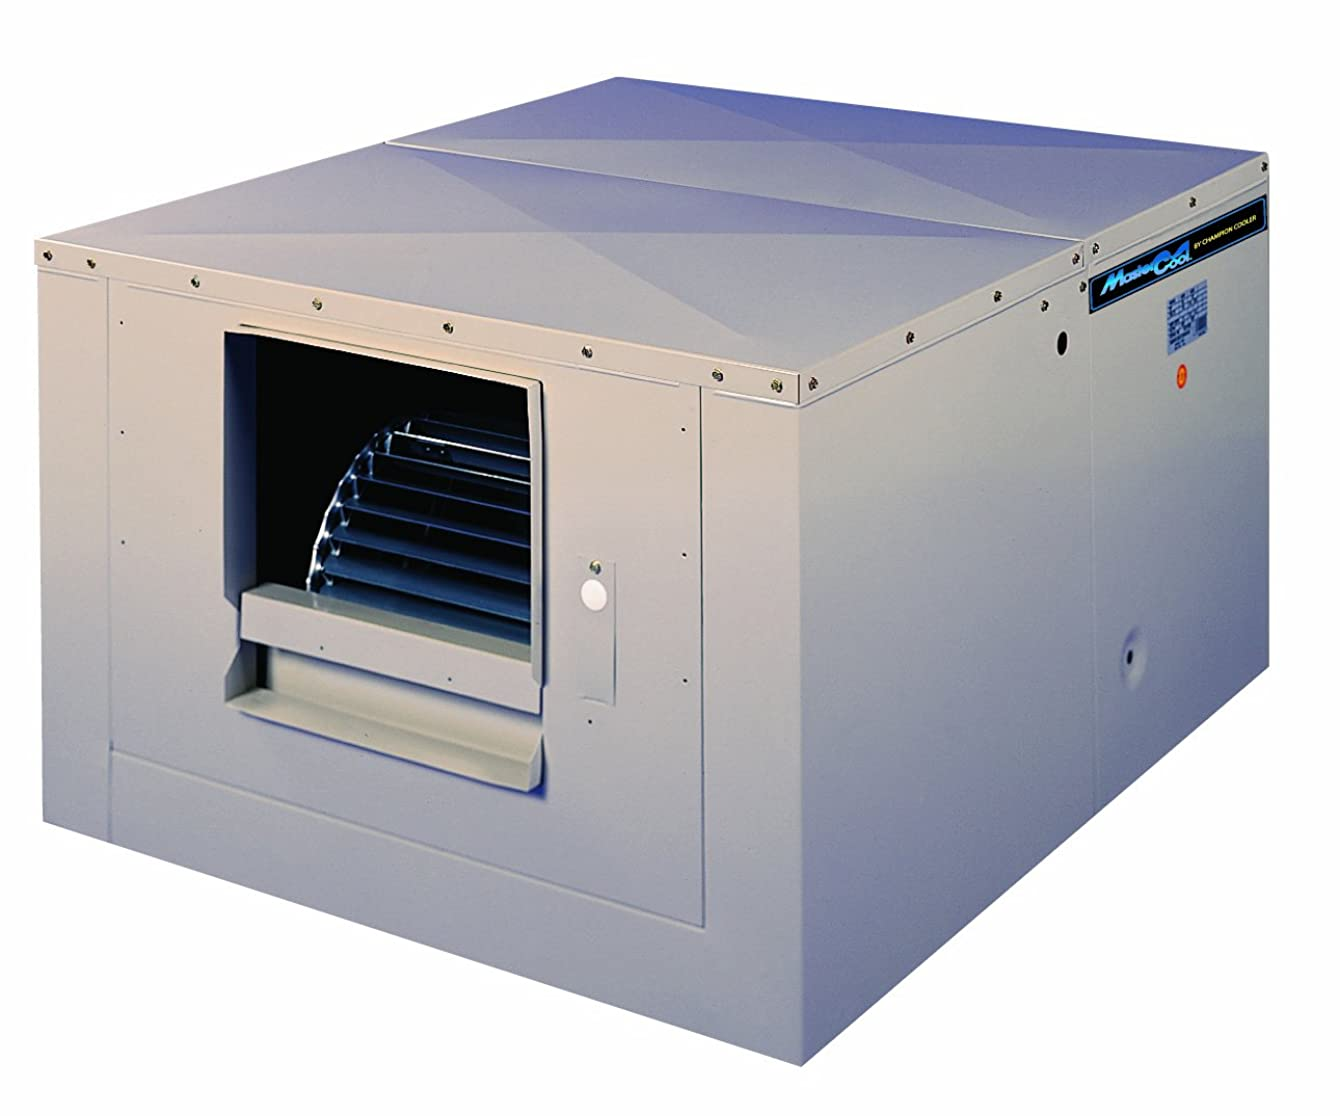 MasterCool AS2C5112 Side-Draft Evaporative Cooler with 1,750 Square Foot Cooling, 5,000 CFM